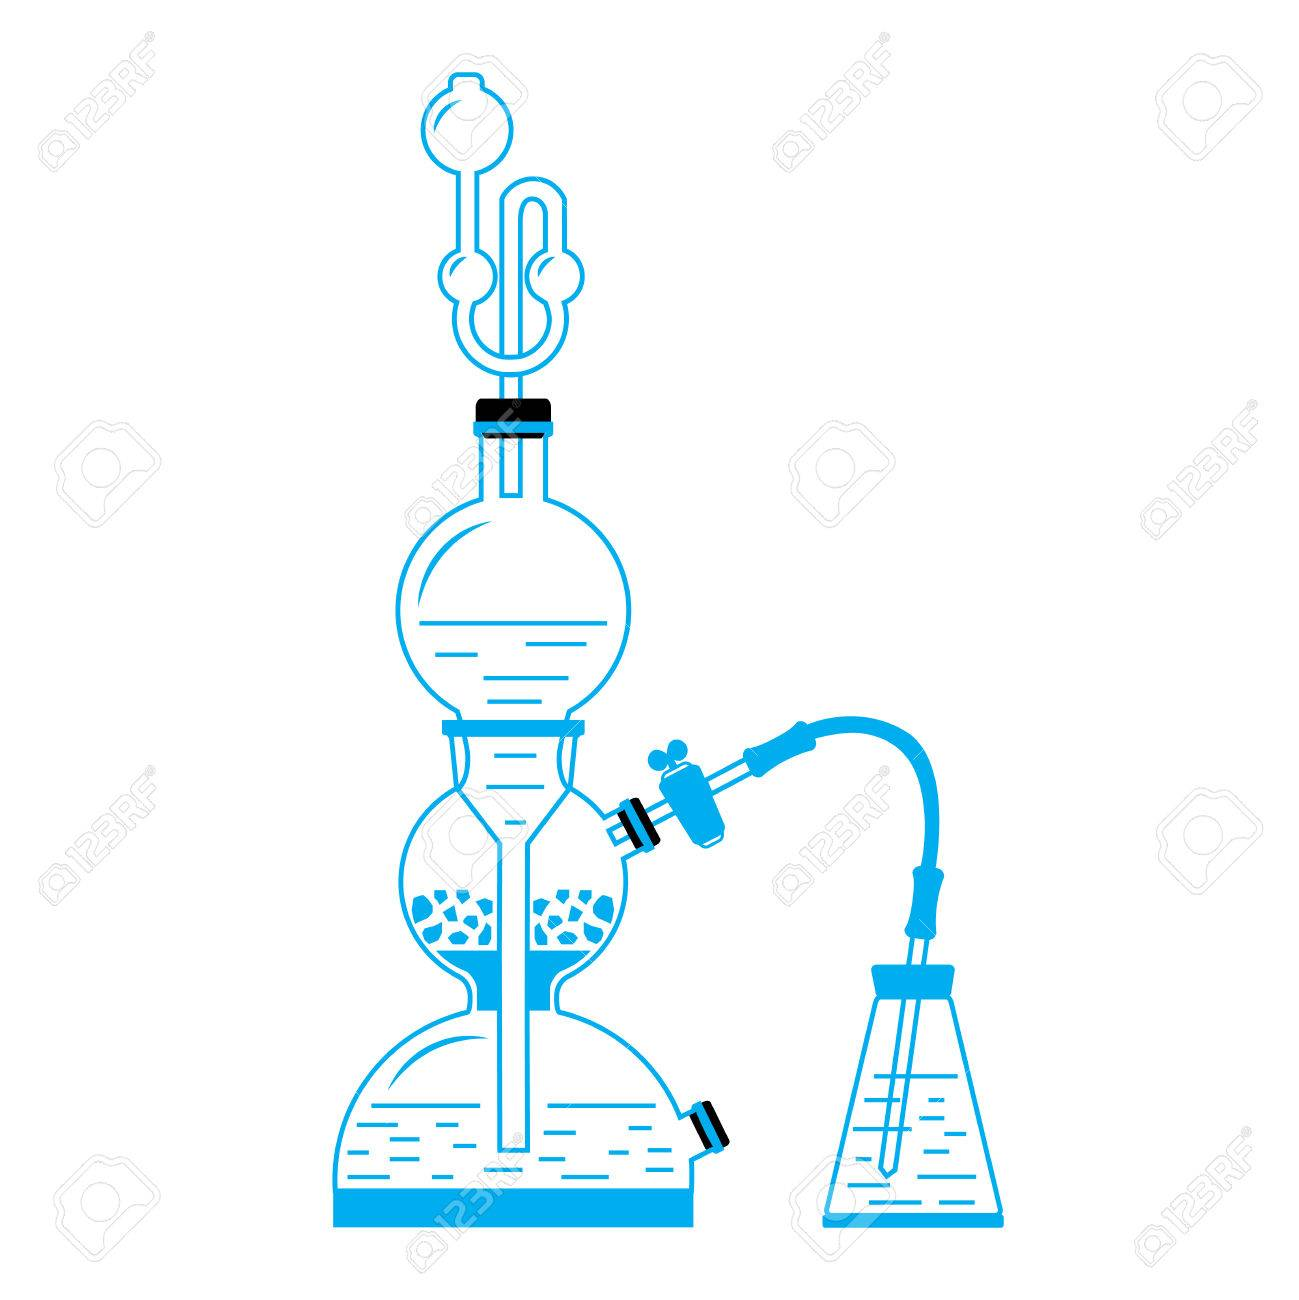 Vector illustration of kipps apparatus old fashioned chemistry vector illustration of kipps apparatus old fashioned chemistry glassware used for gases generation through chemical ccuart Images